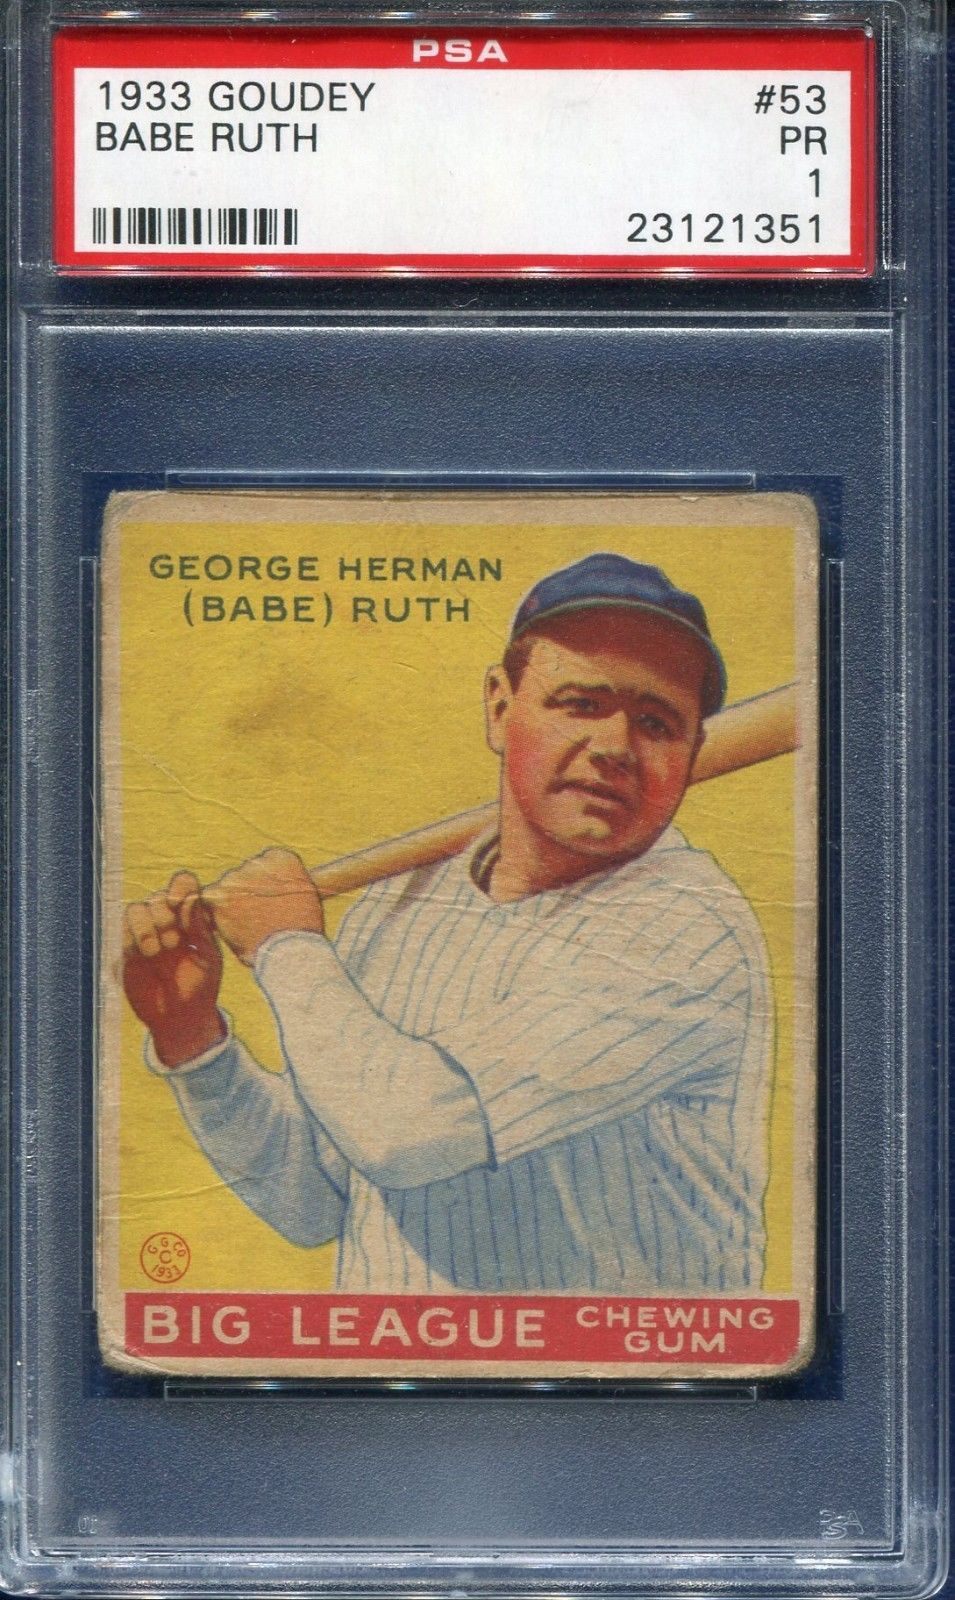 babe ruth cards for sale